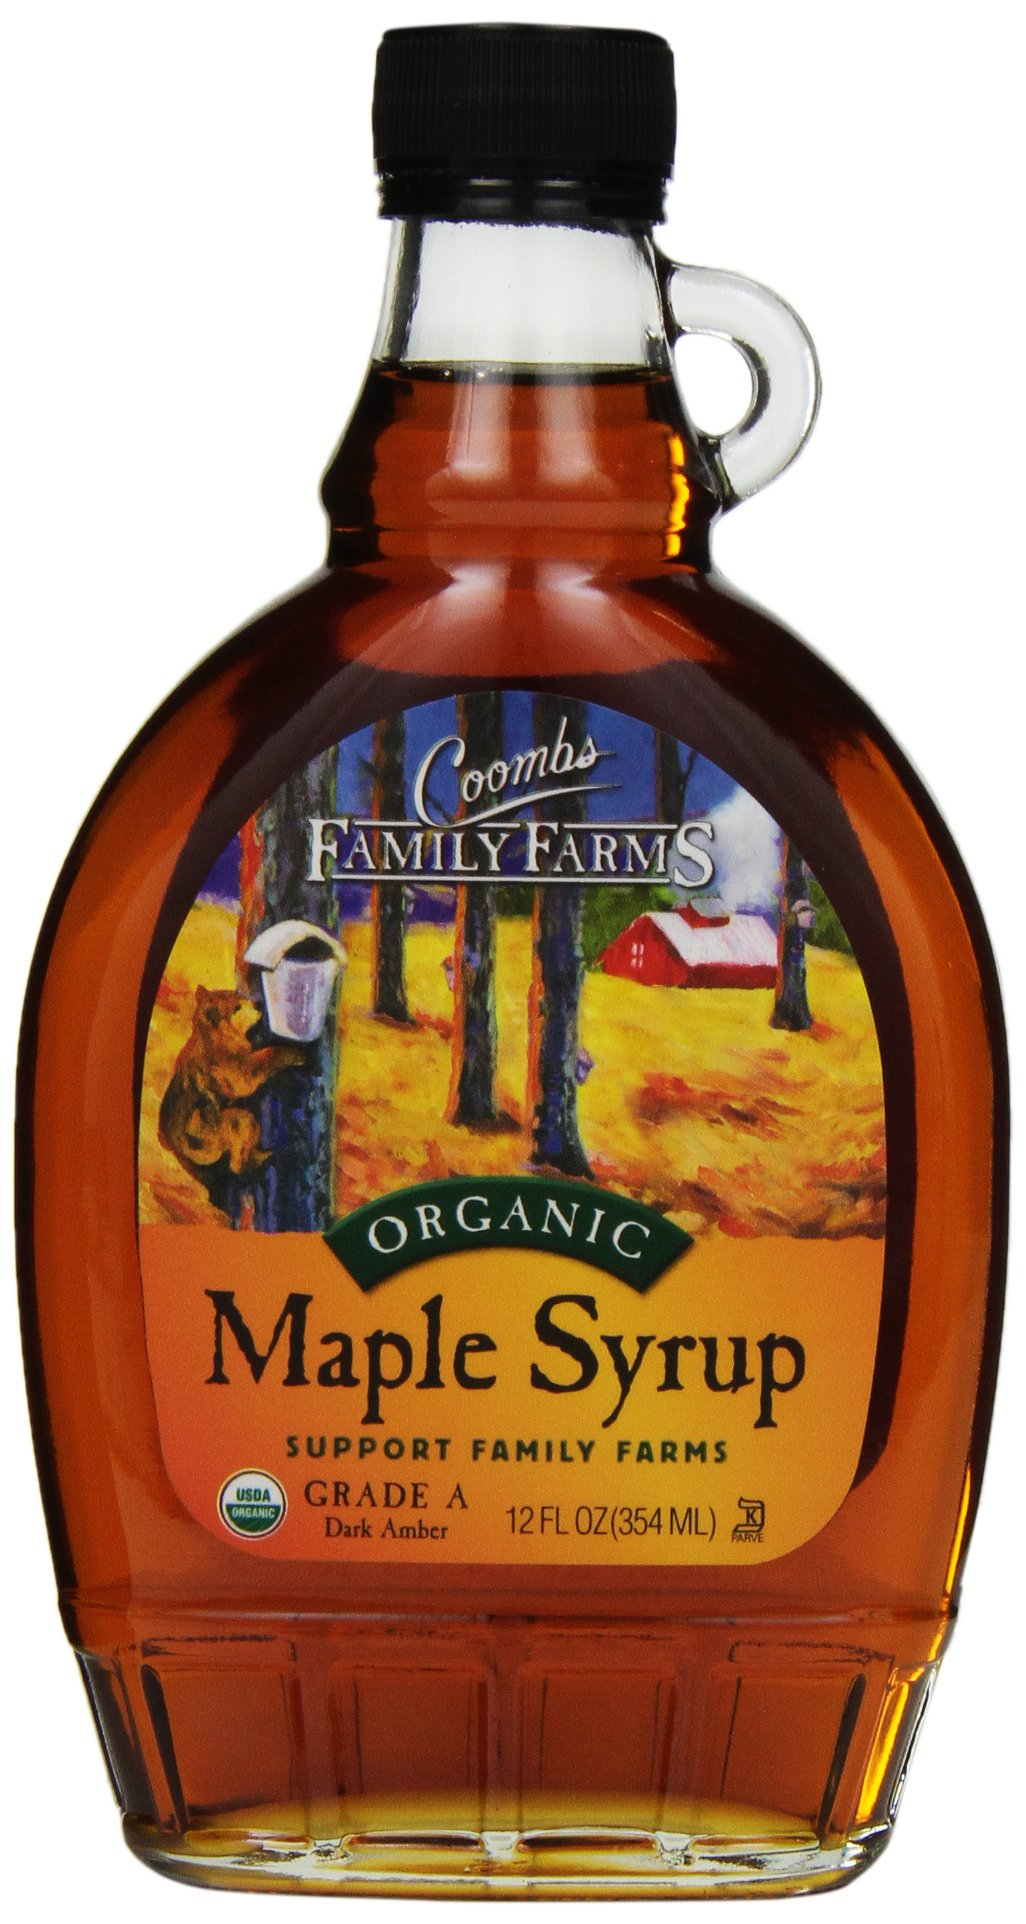 Coombs Family Farms, Grade A Maple Syrup, 12 oz